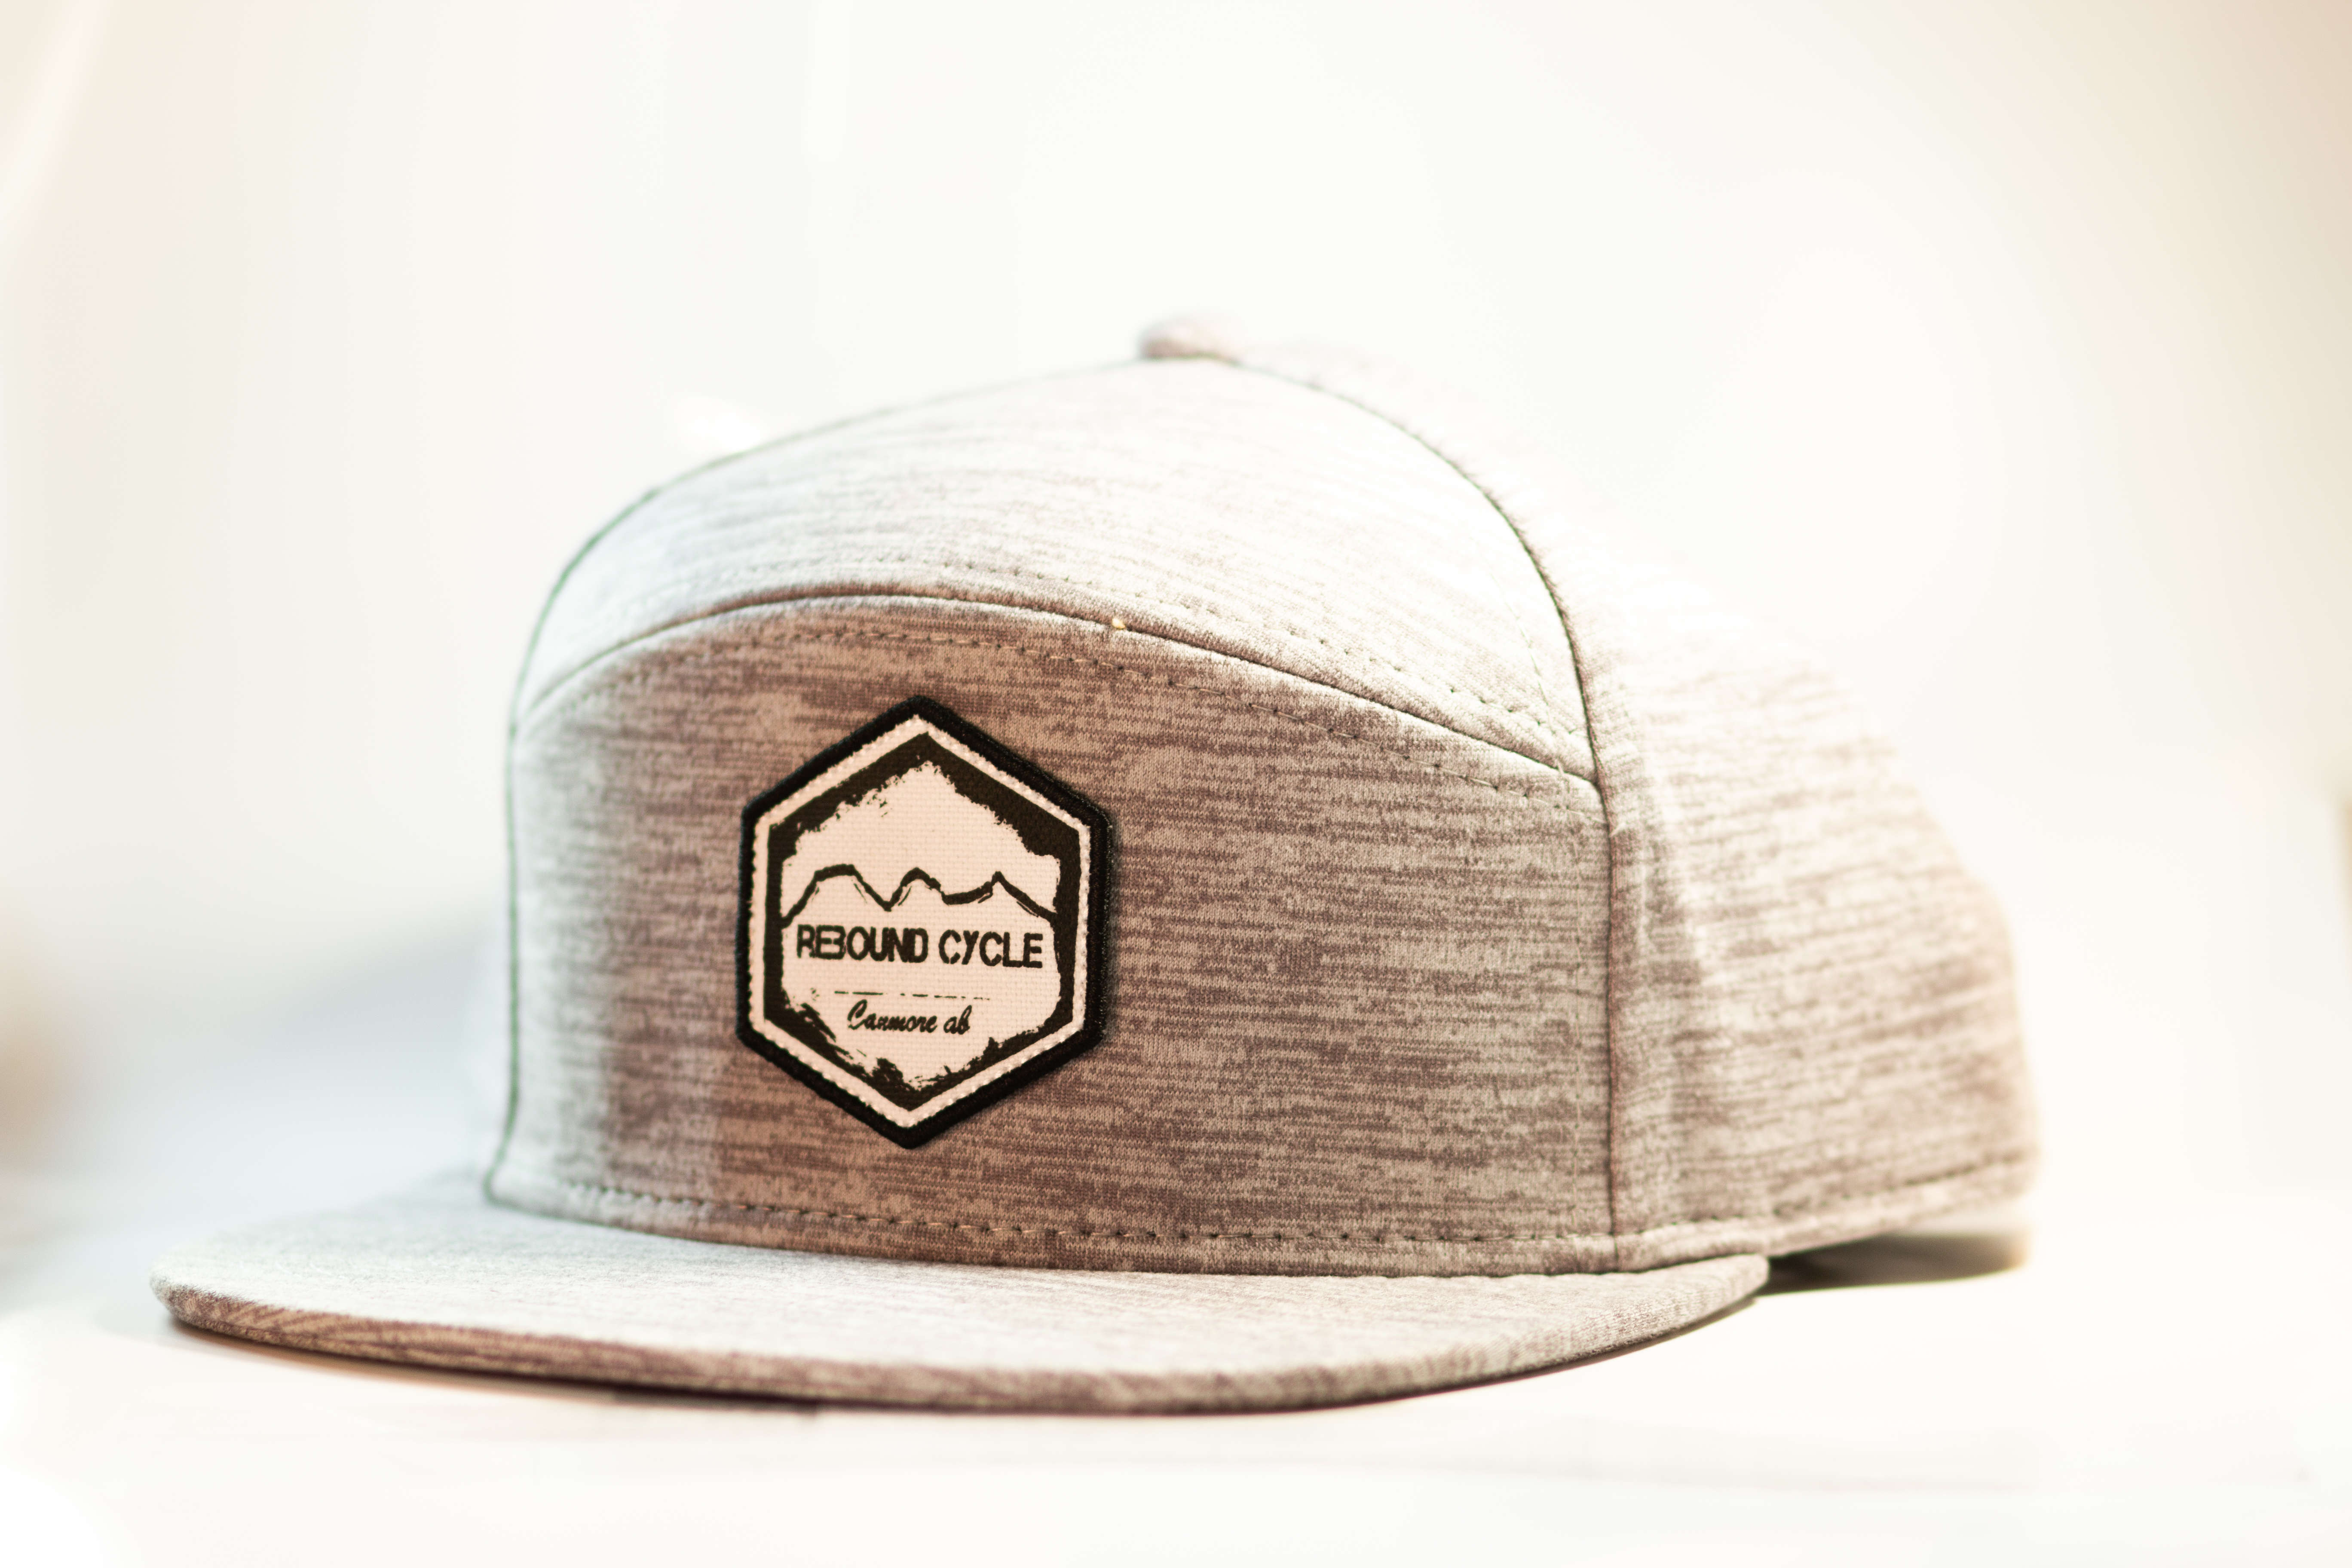 Rebound cycle charcoal hat